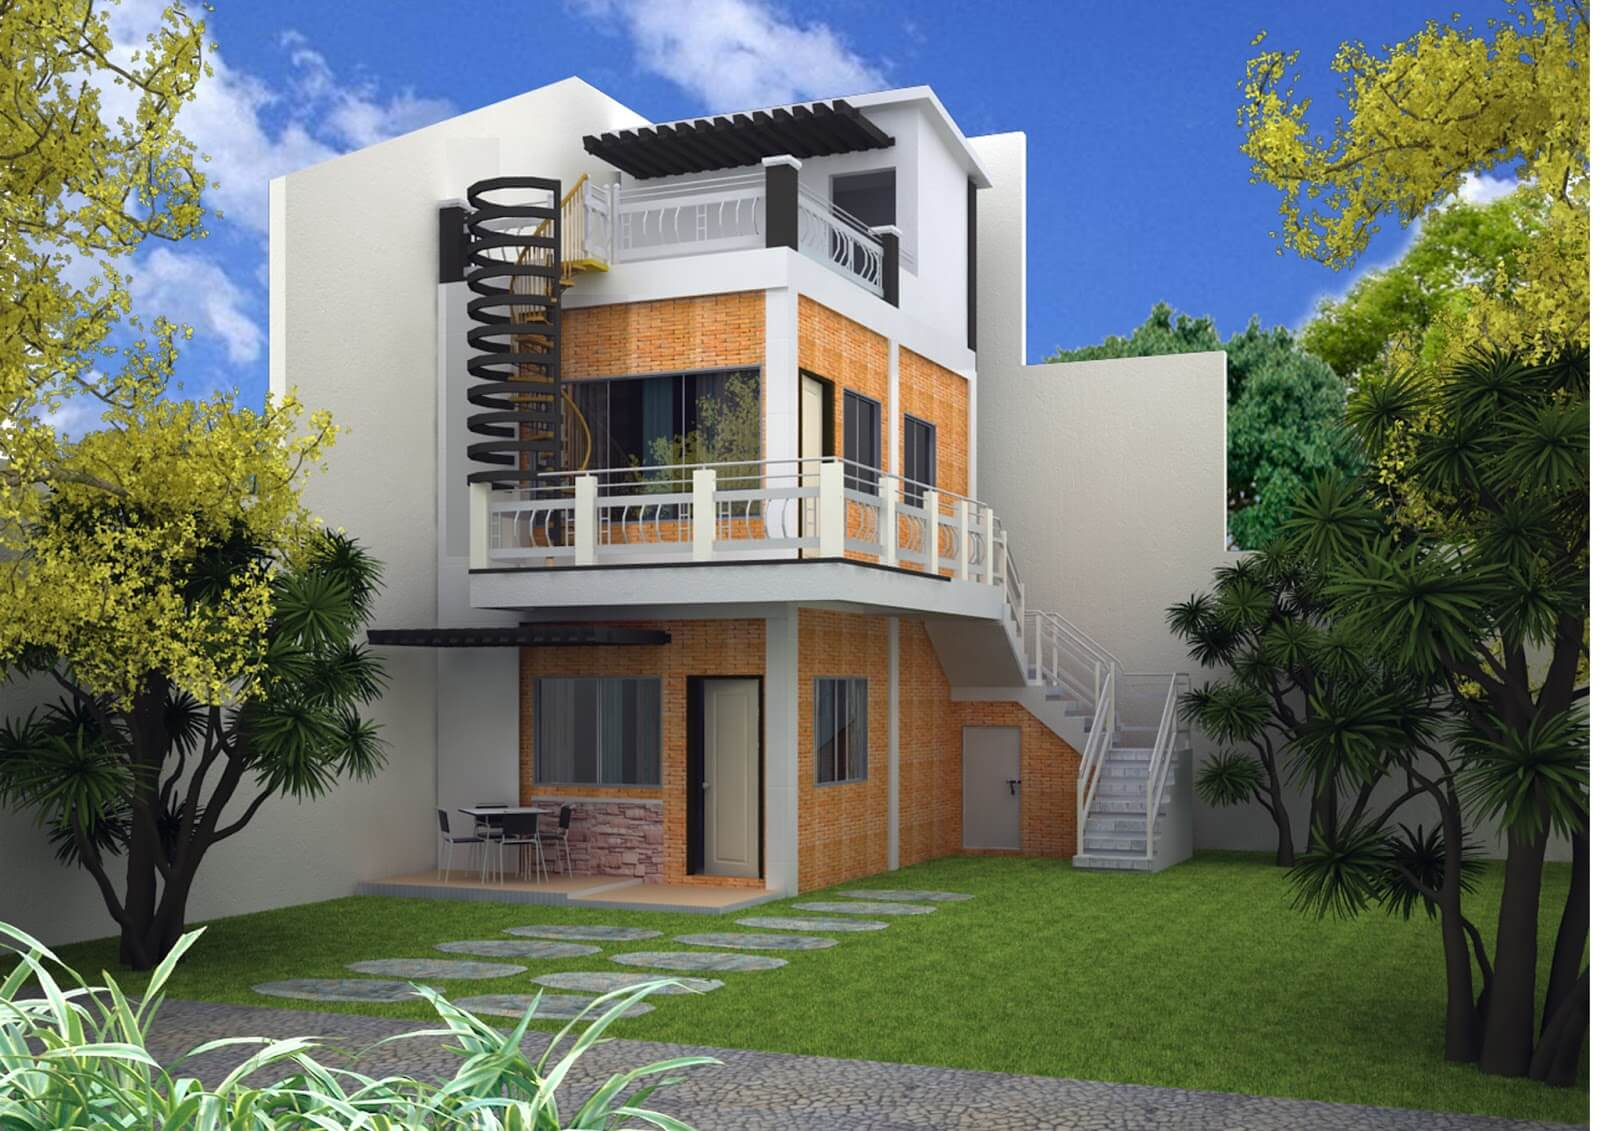 3 Storey House Design 6 - Download Small House Design 2 Storey With Rooftop Pics